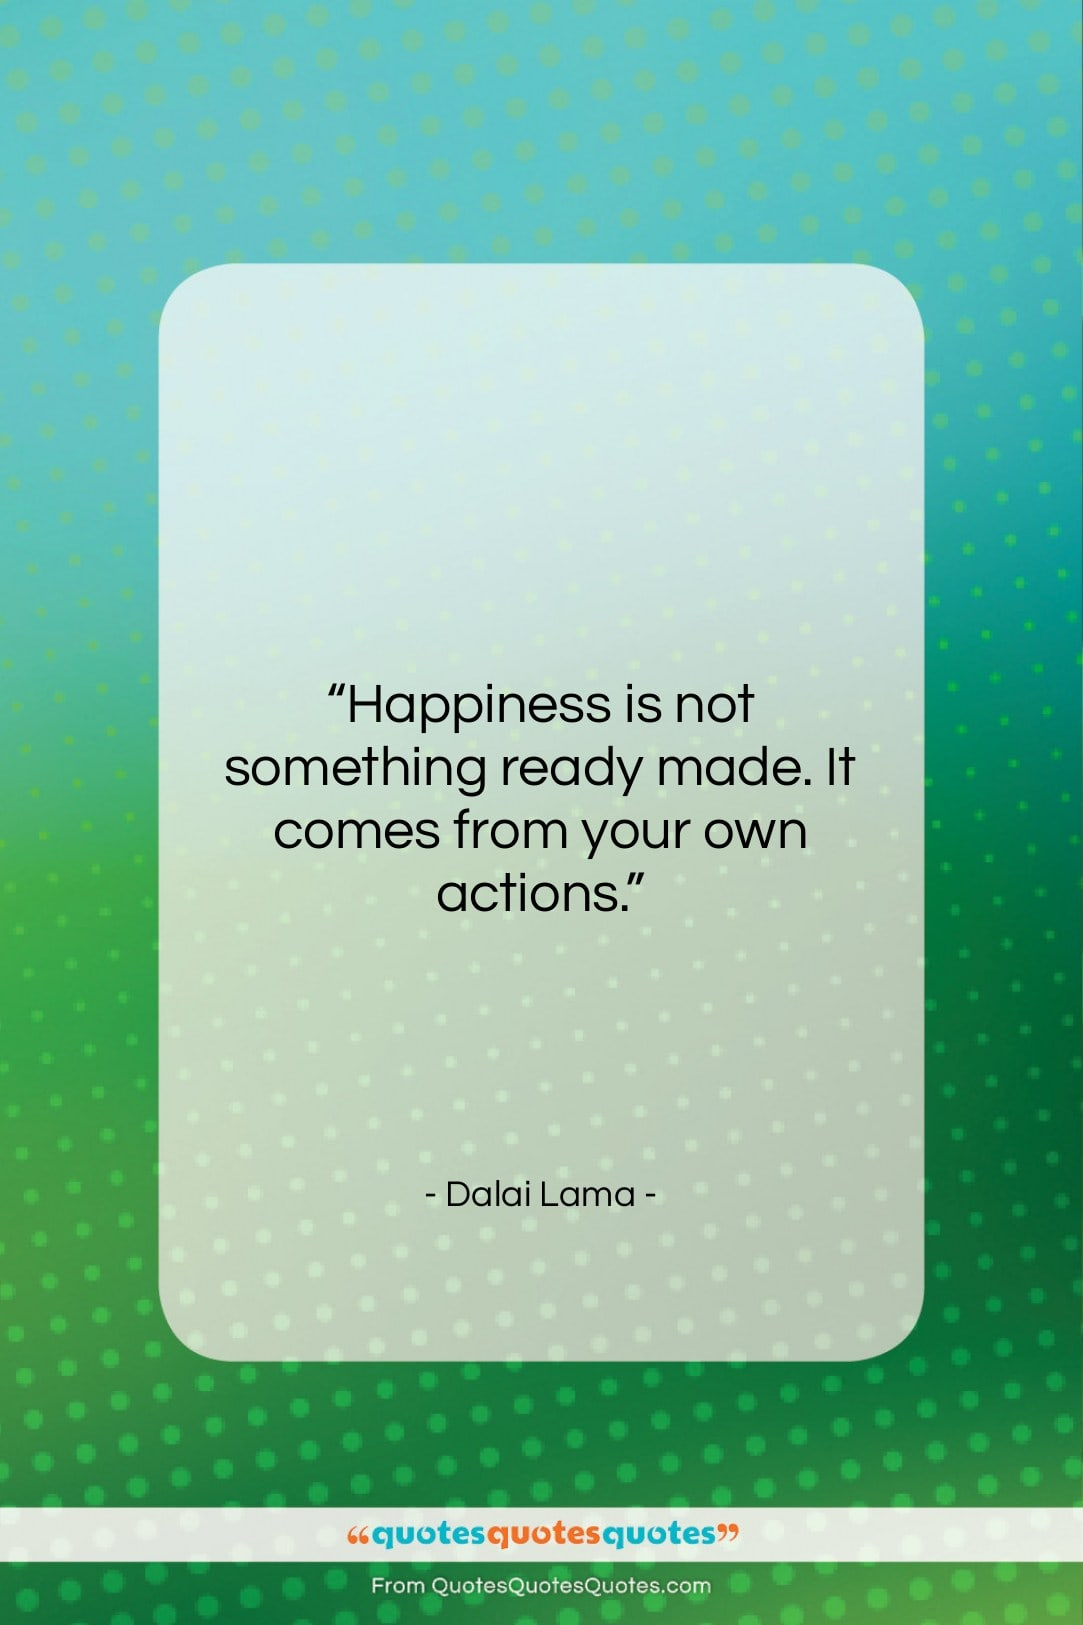 """Dalai Lama quote: """"Happiness is not something ready made. It…""""- at QuotesQuotesQuotes.com"""